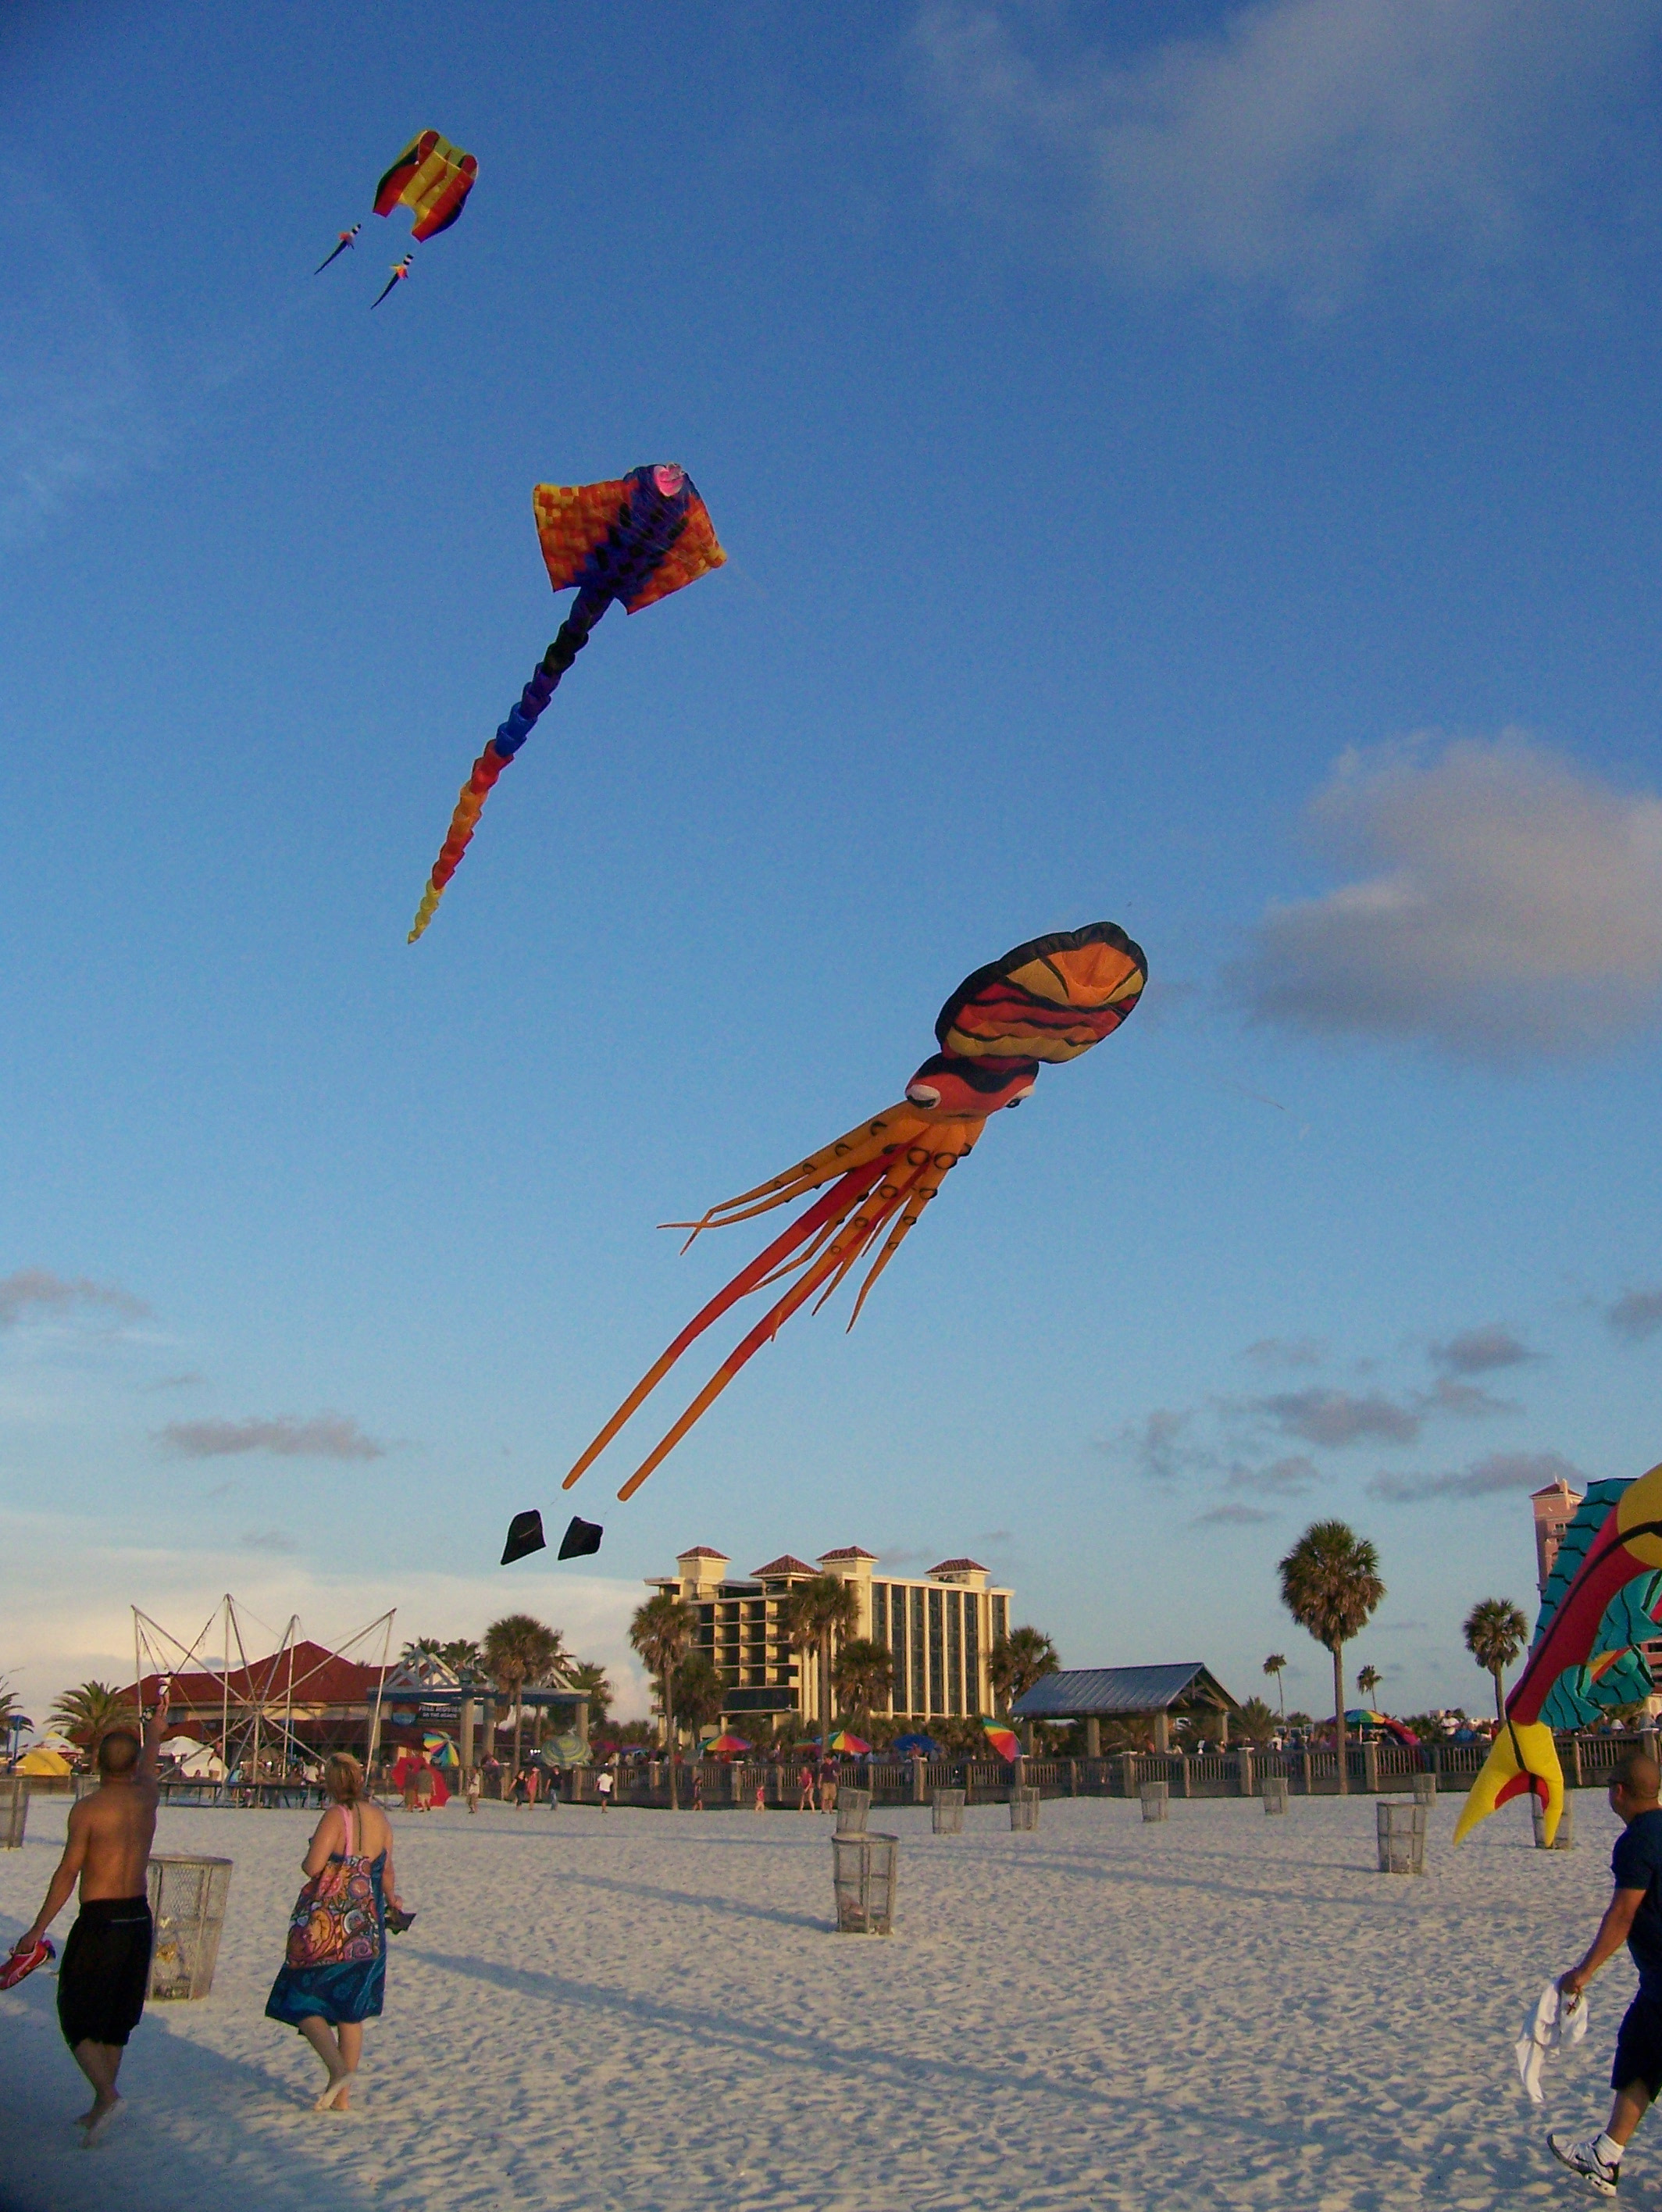 Kiting TampaBay Flying at Pier 60